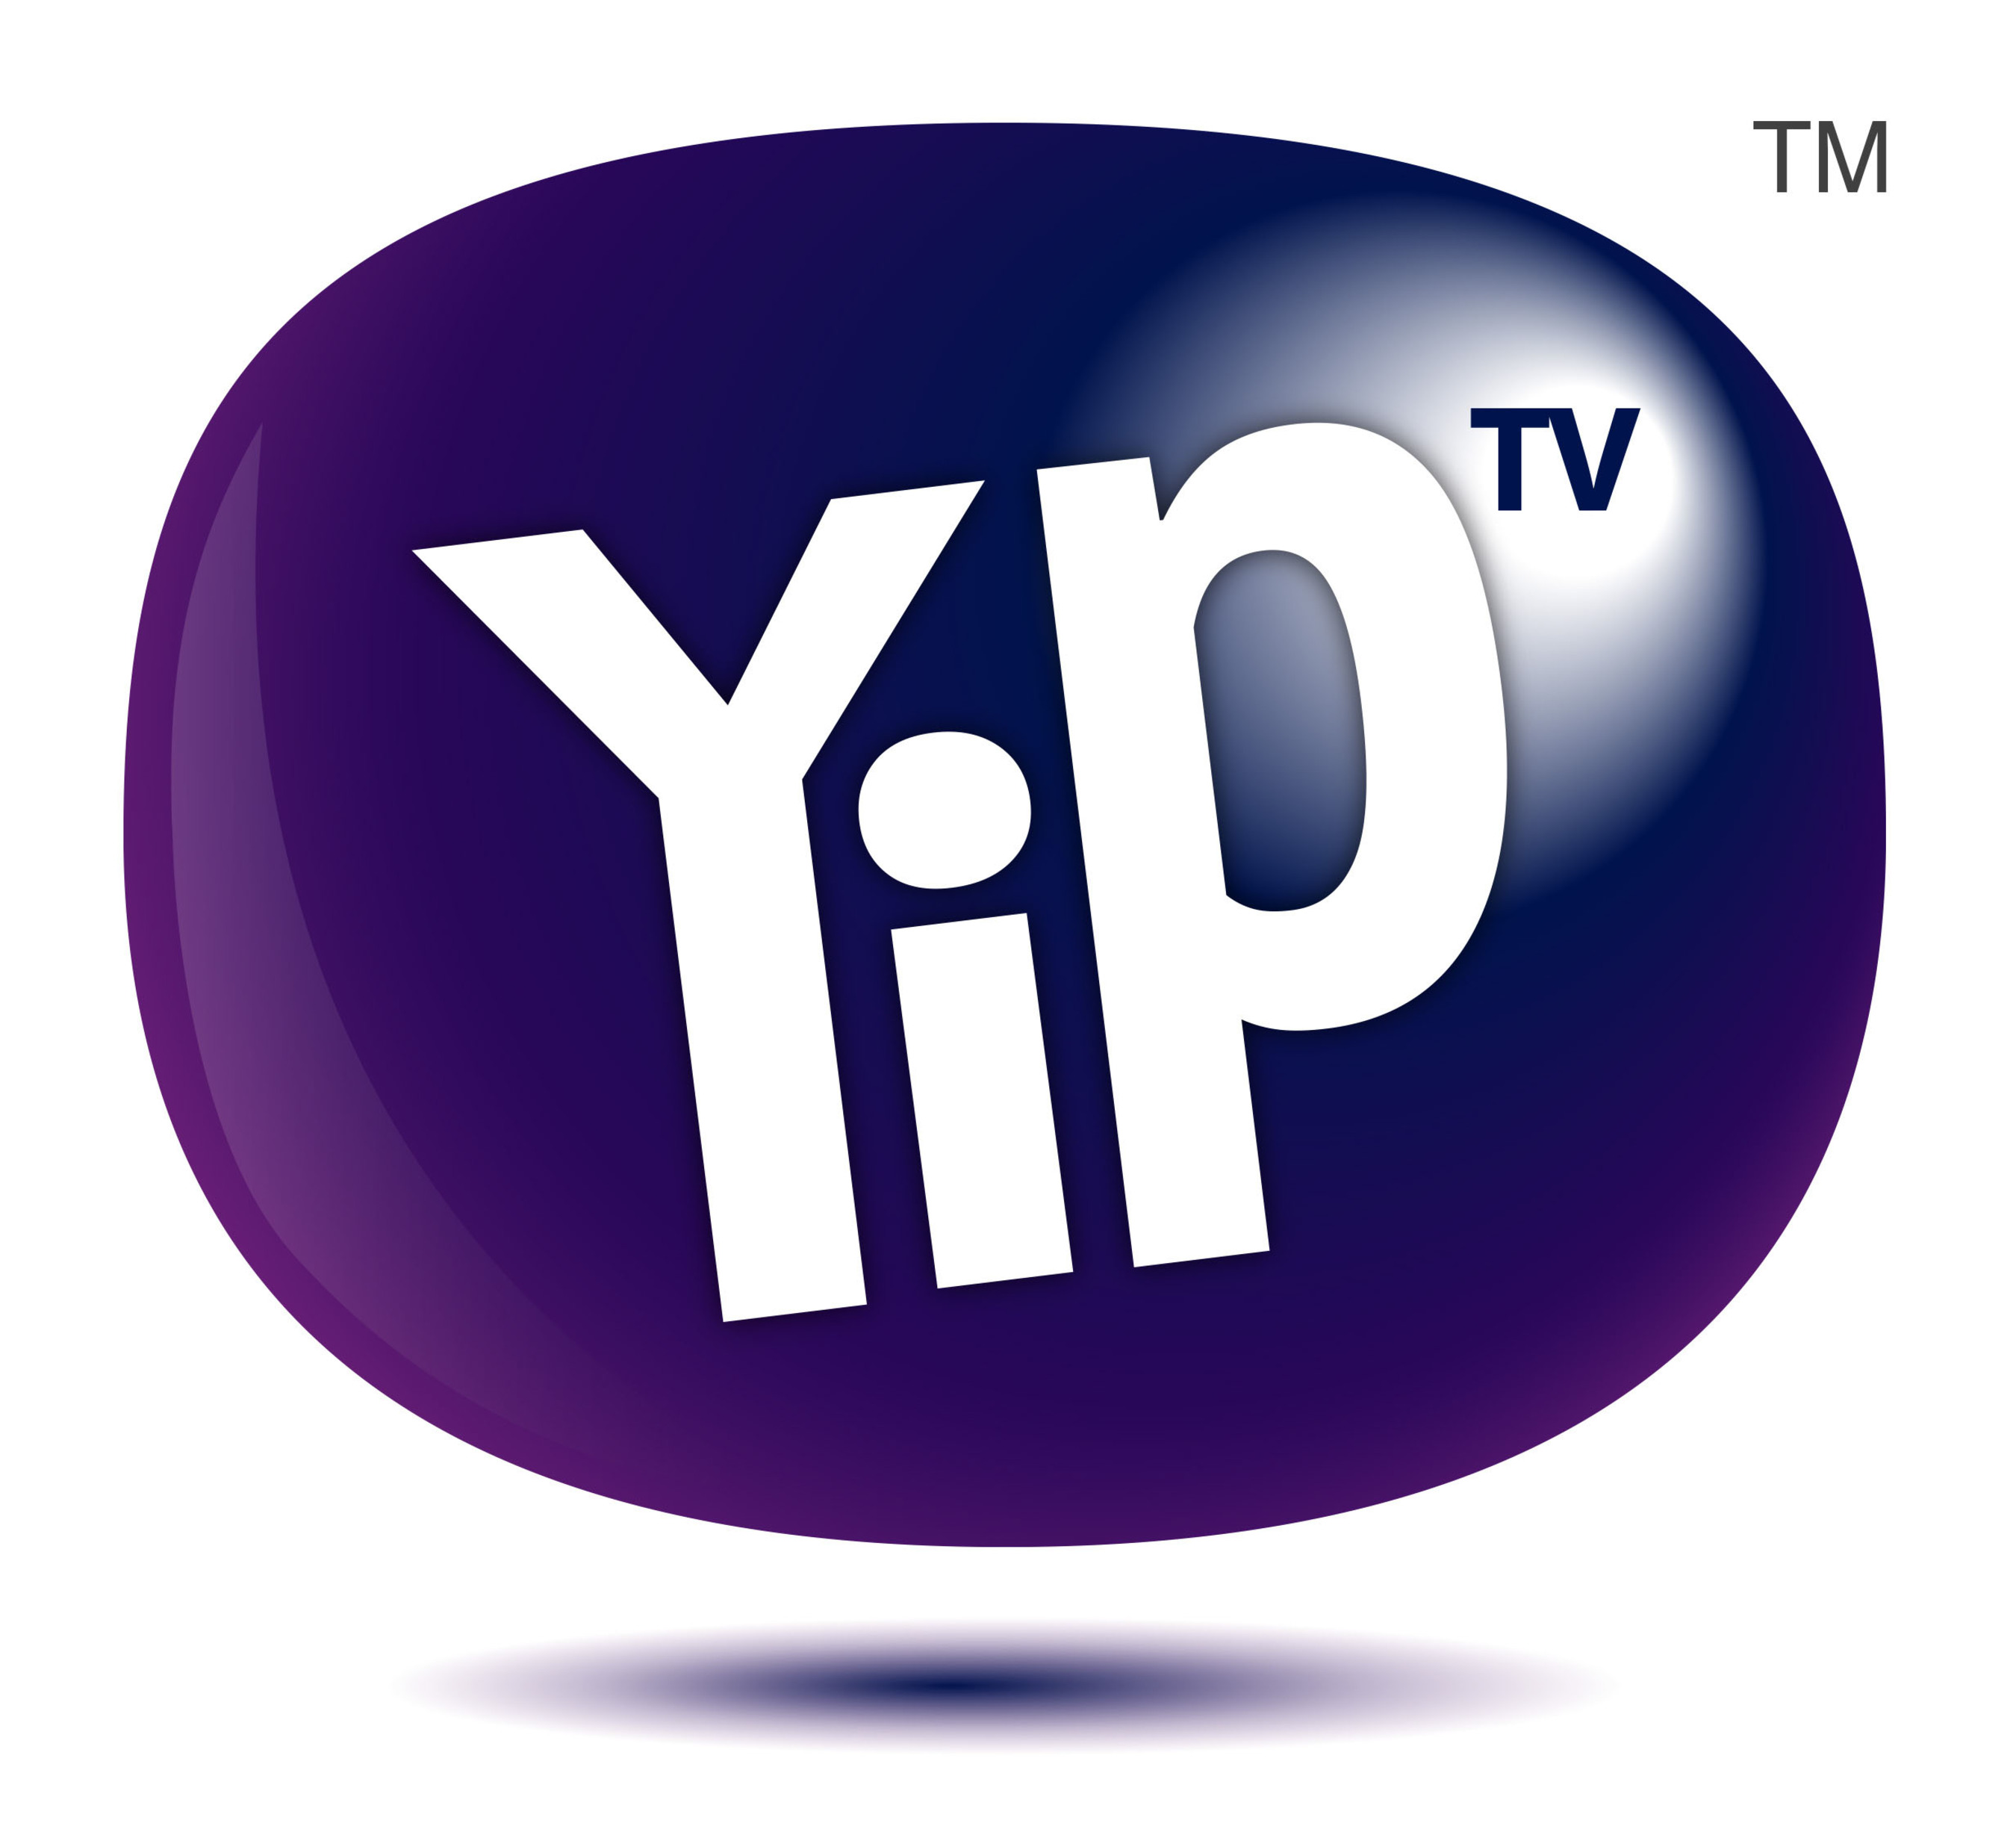 yiptv adds bein sports to stellar lineup of live channels aimed at